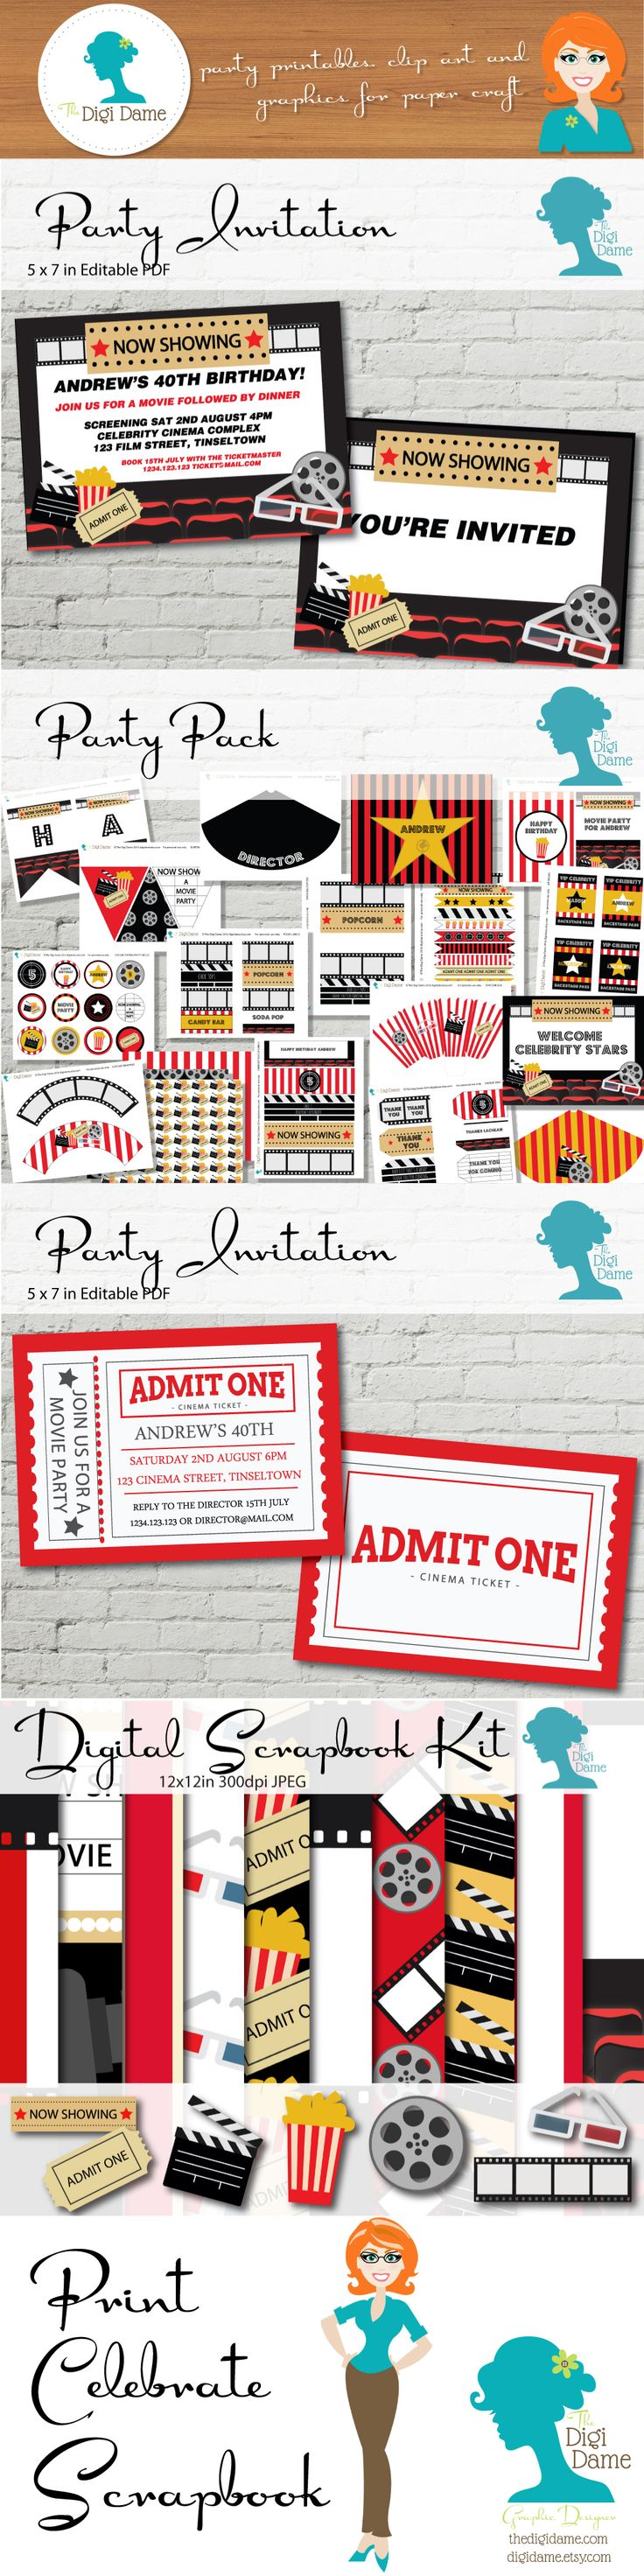 Movie Cinema Party! Print your Party, Celebrate it, then Scrapbook it, with The…